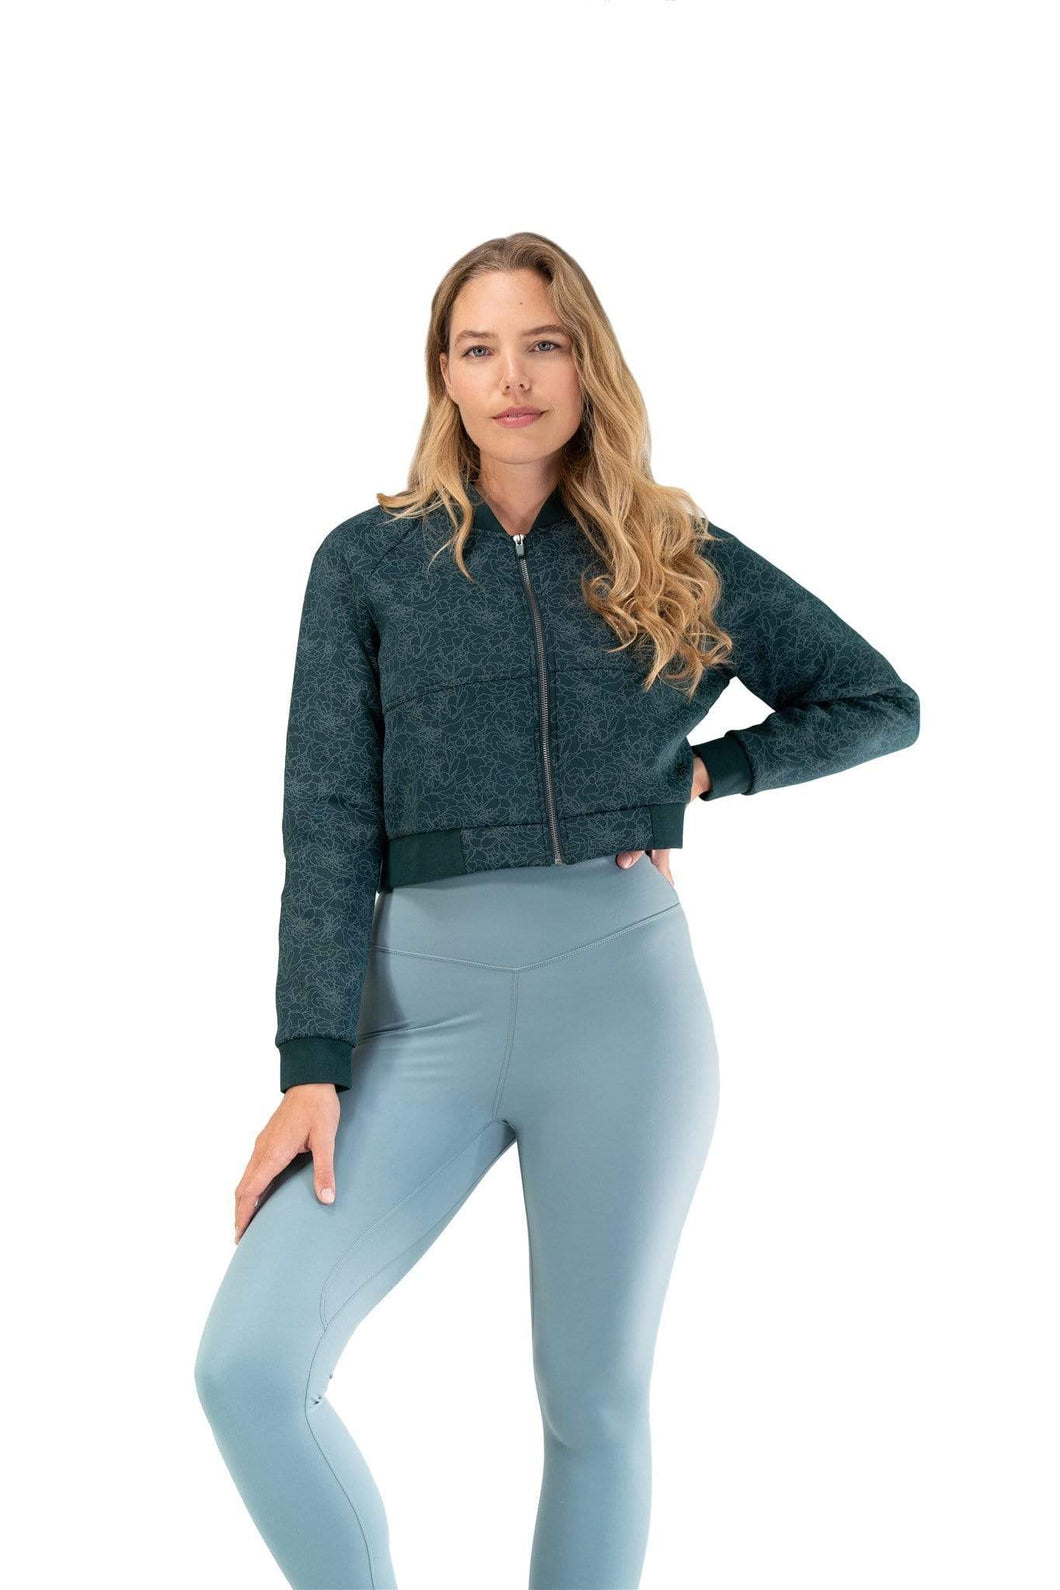 Balance Athletica Tops The Women's Flight Jacket - Deep Sea - Fleur